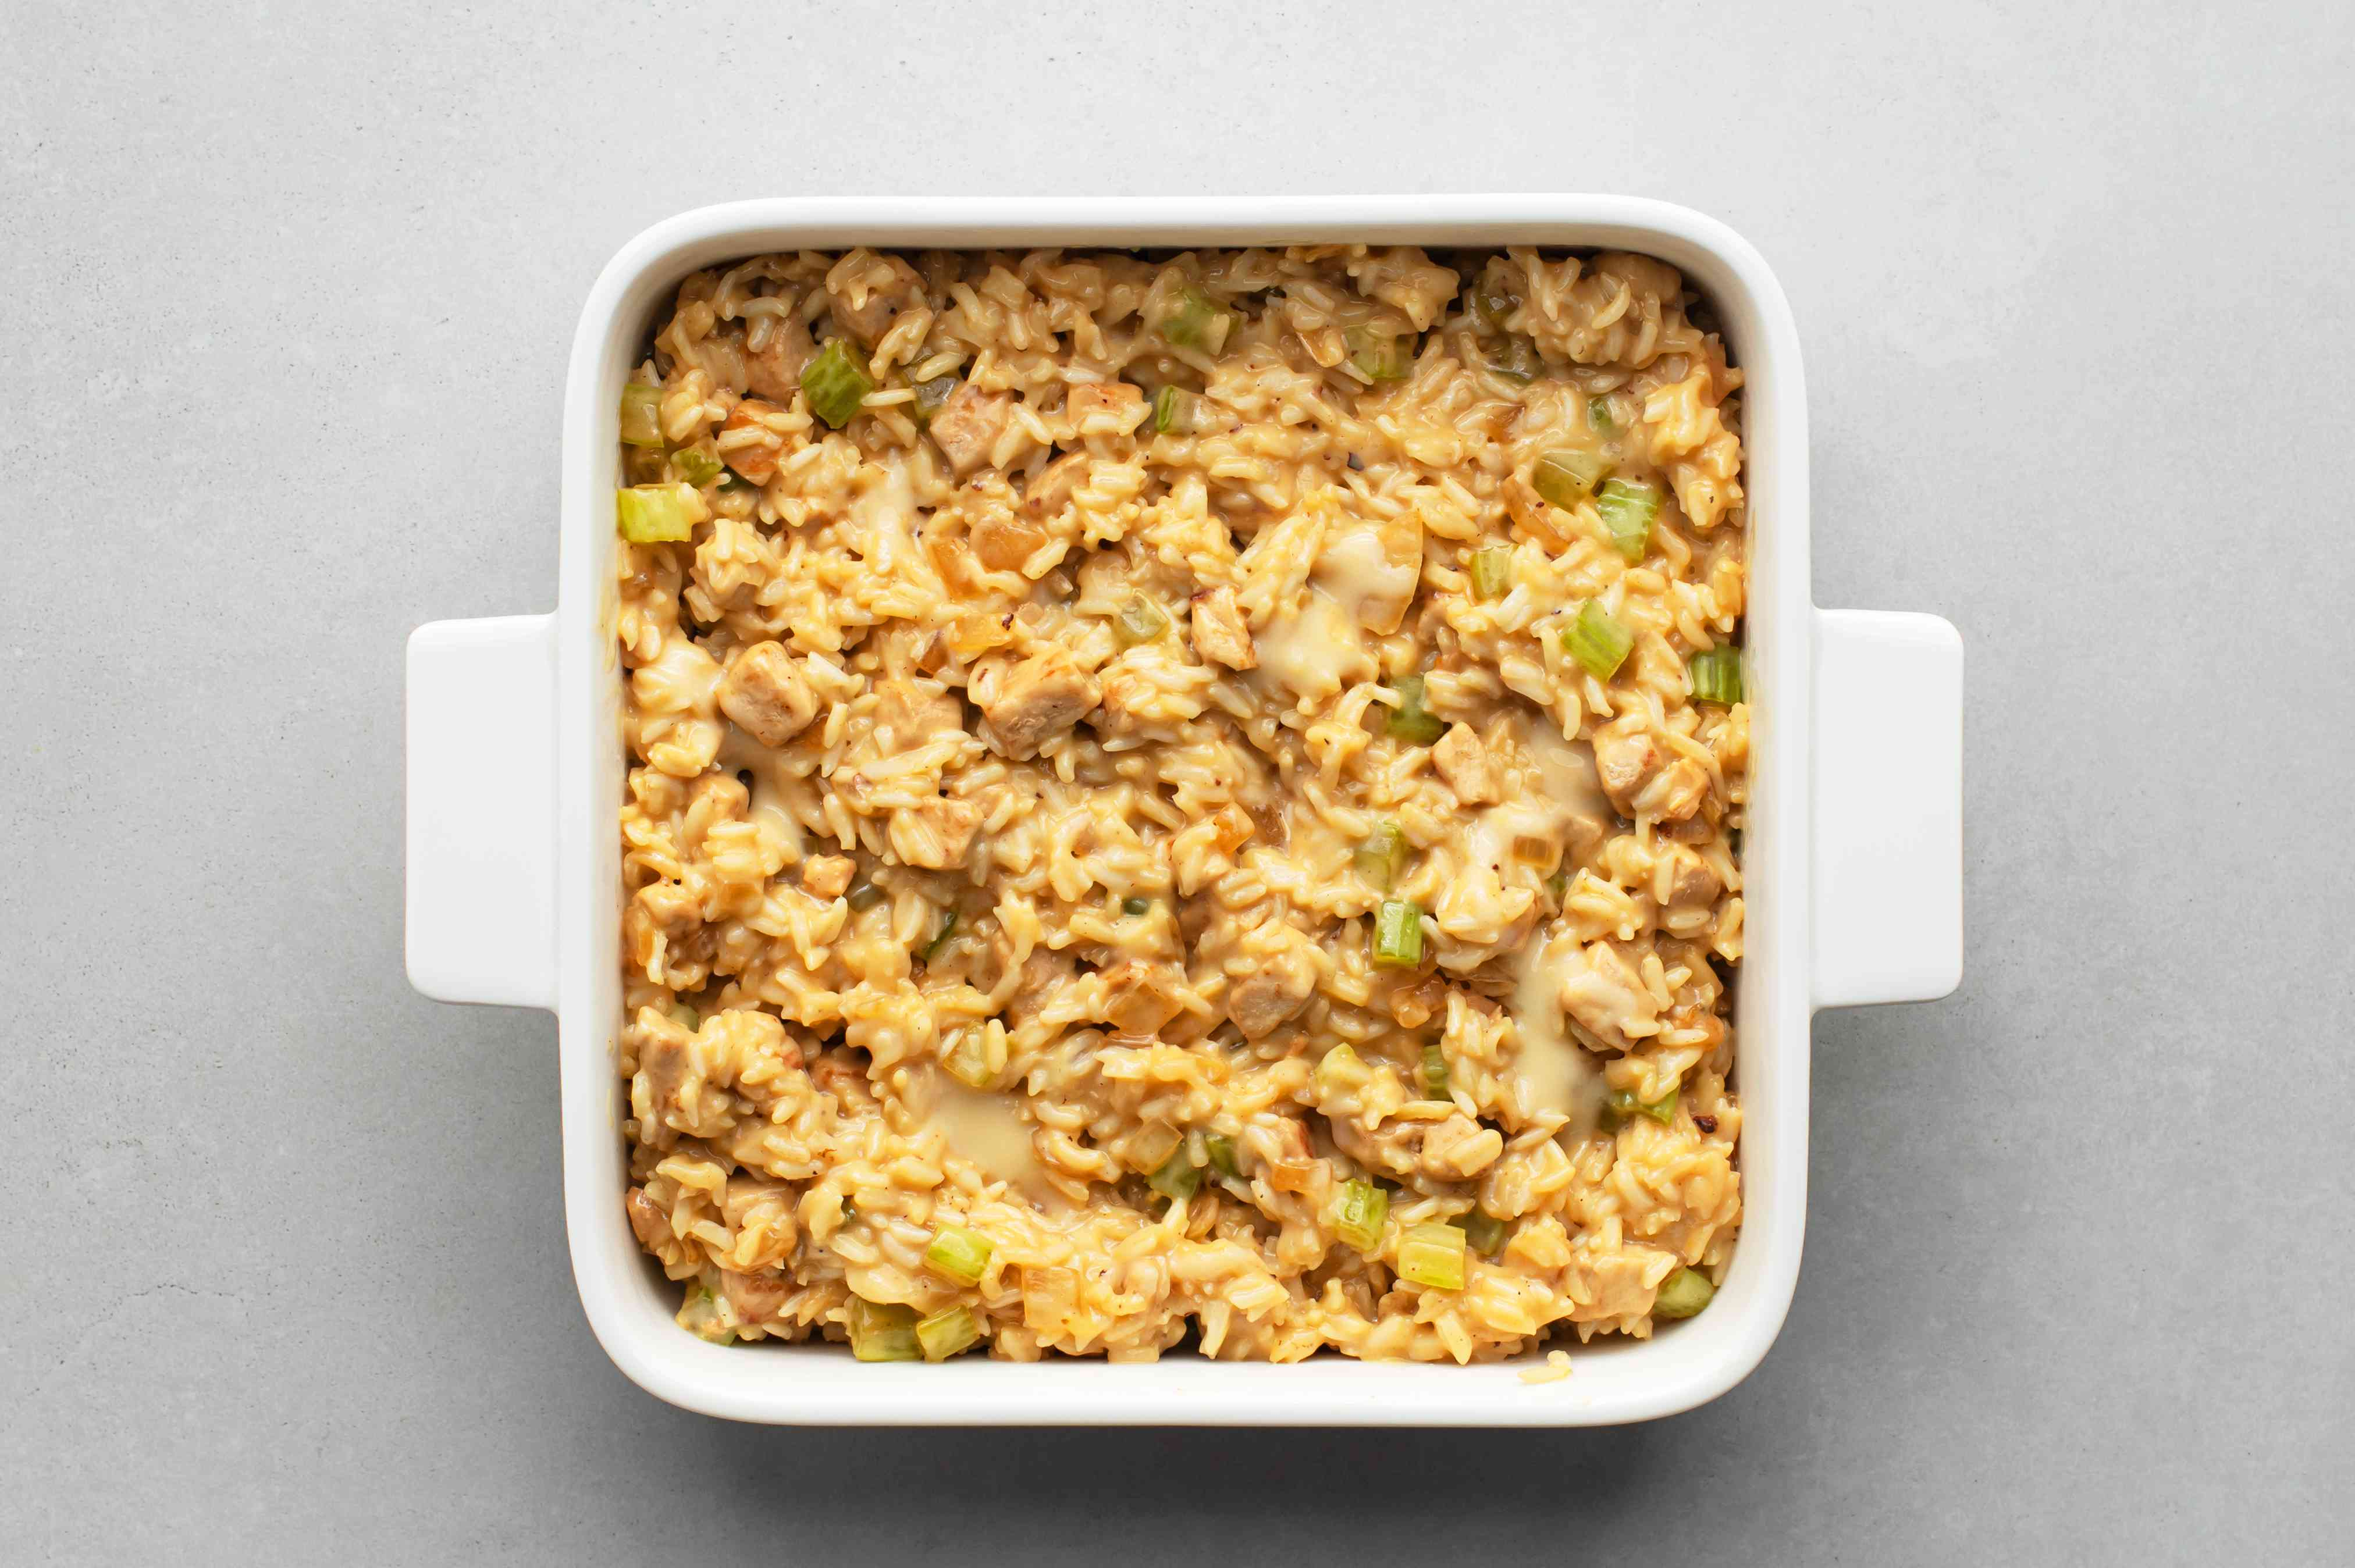 Spoon the pork, rice, and vegetable mixture into the prepared casserole dish